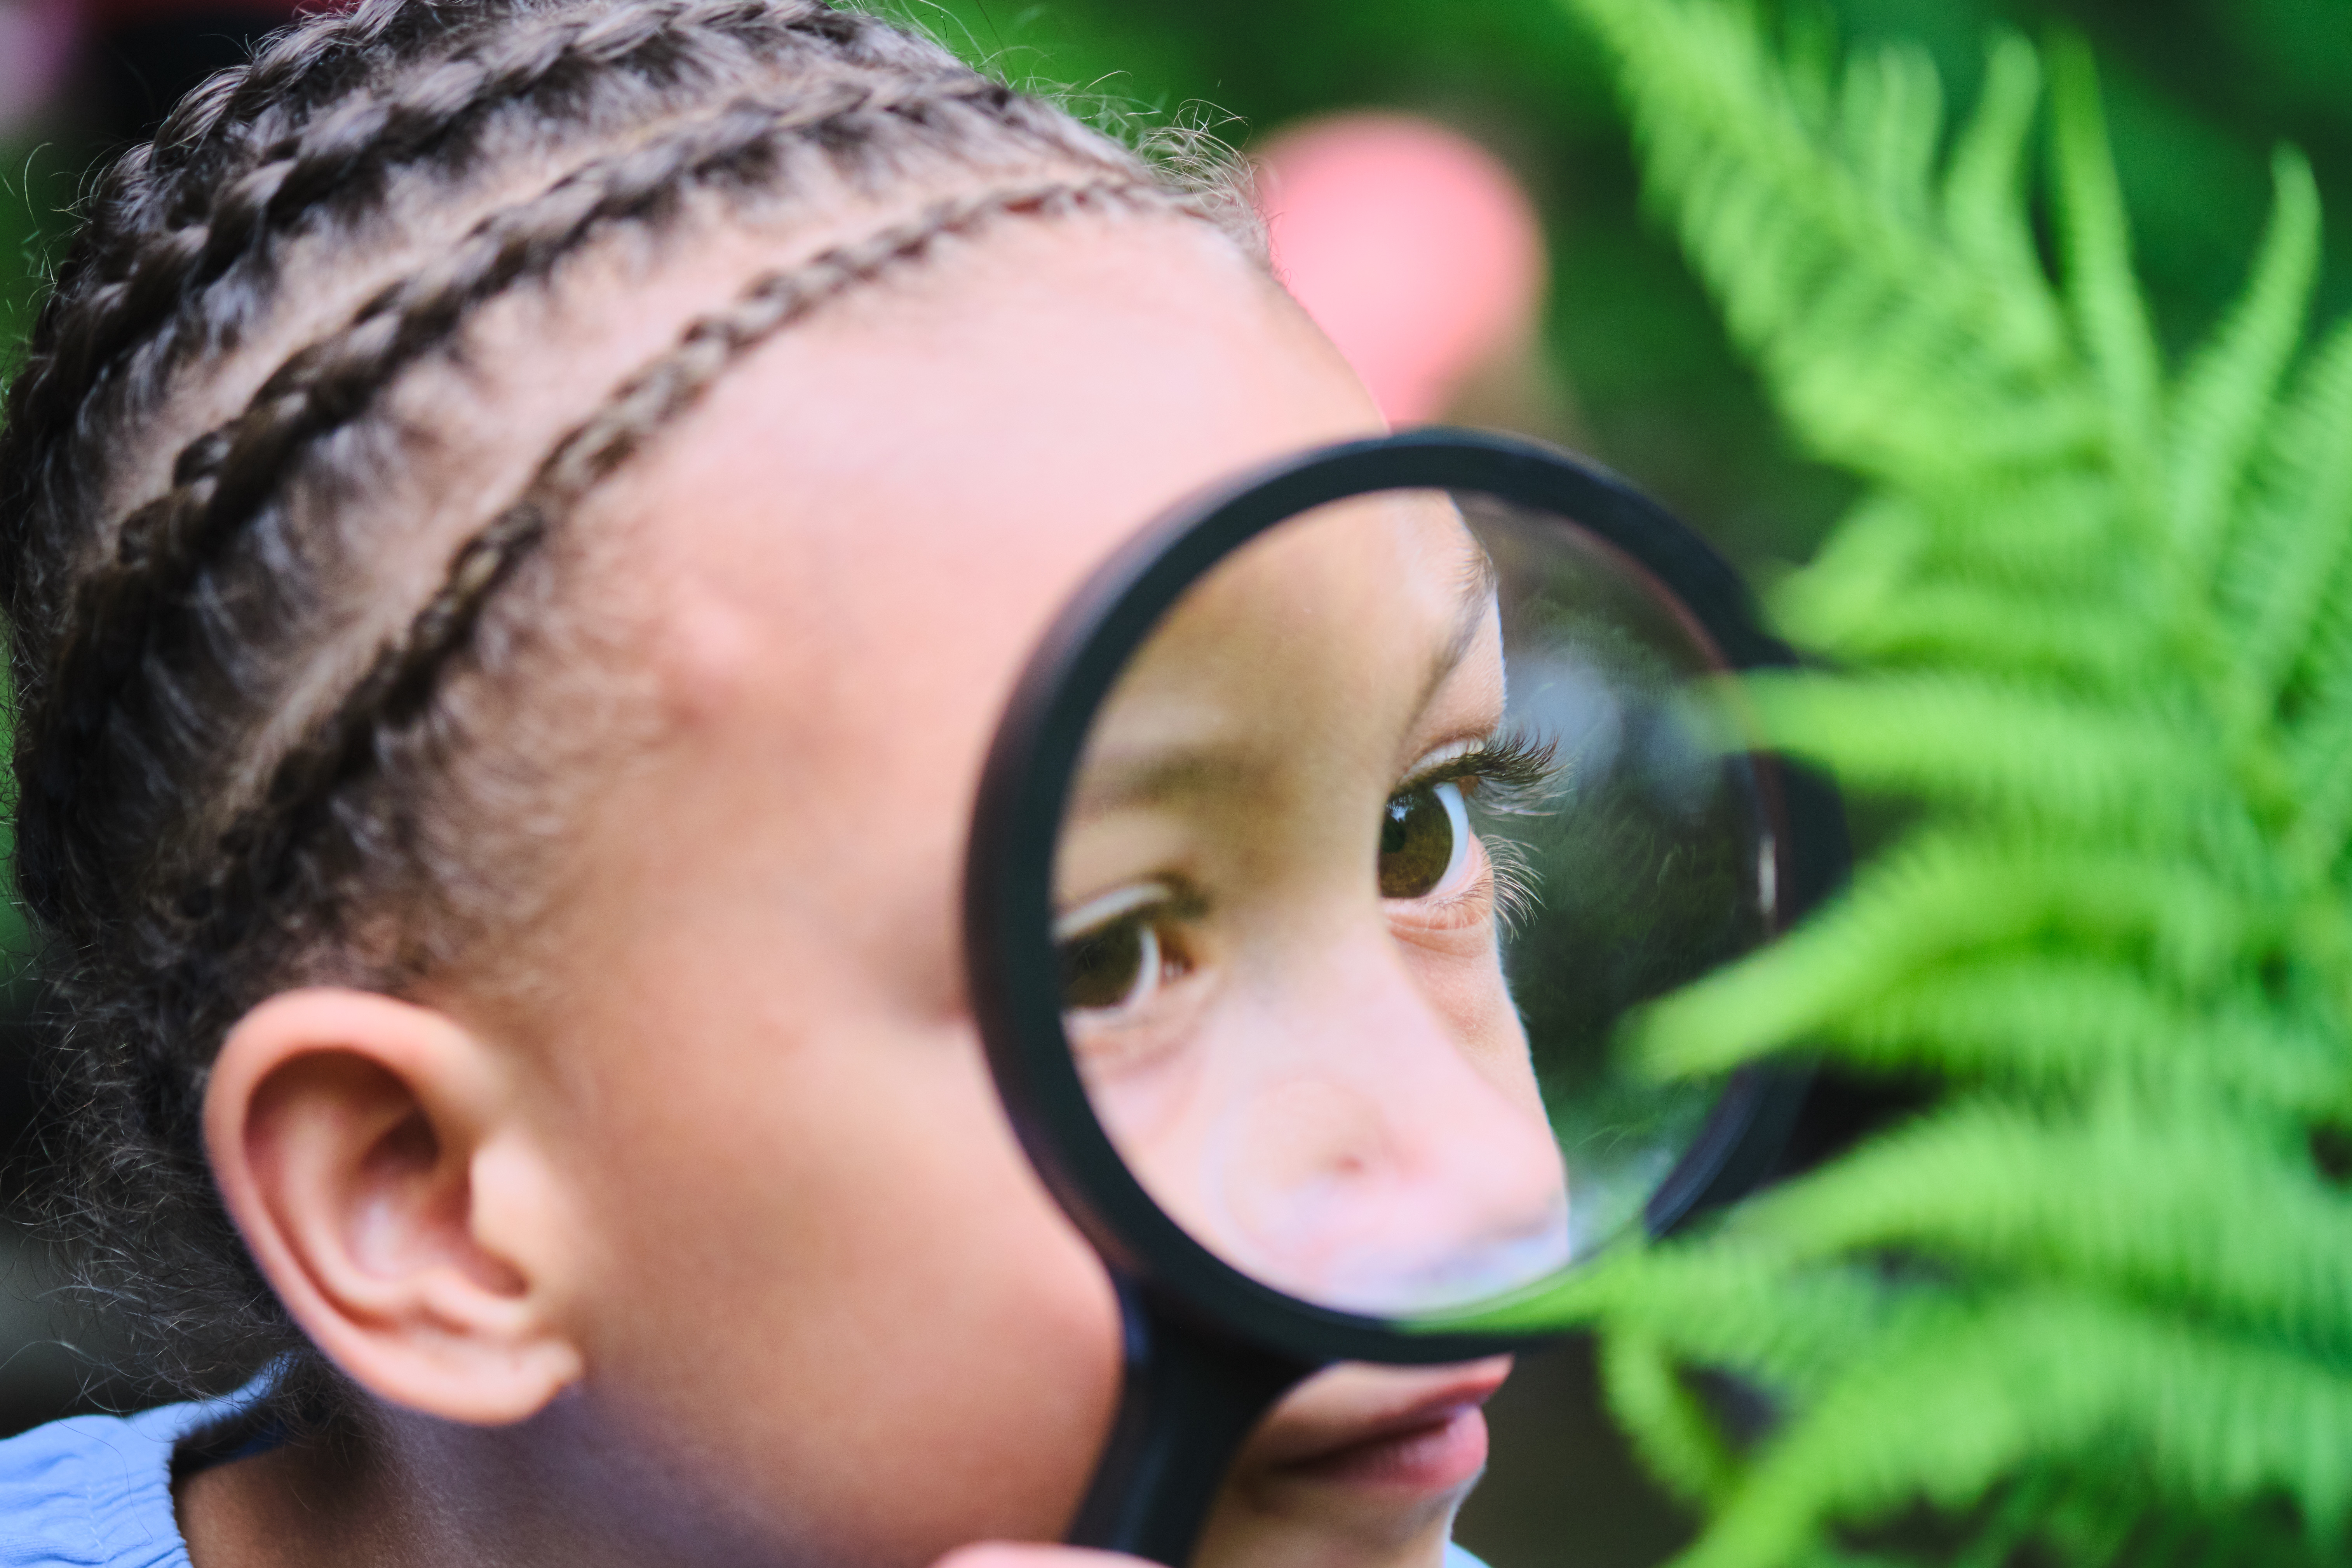 A young child looks through a magnifying glass